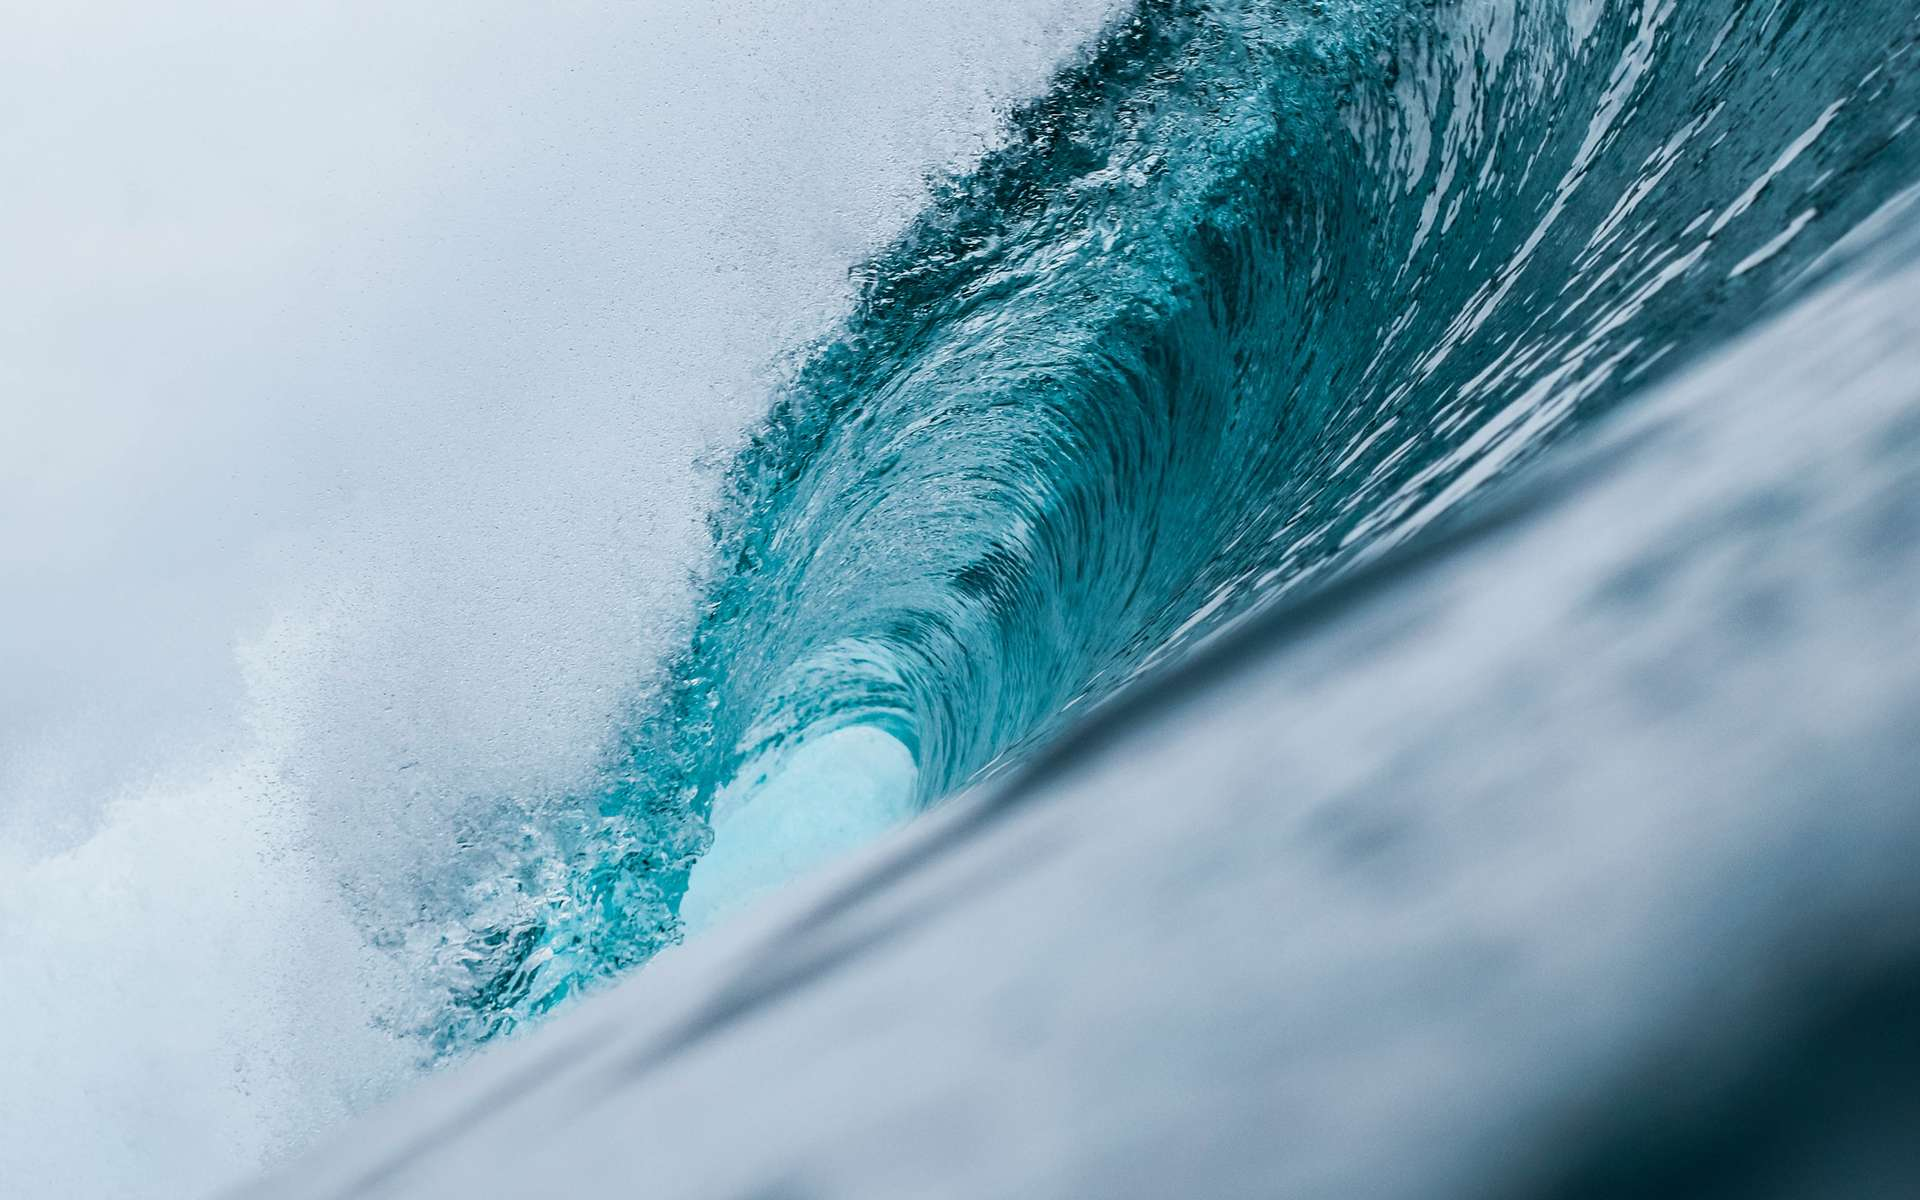 La plus haute vague. © Jeremy Bishop, Unsplash